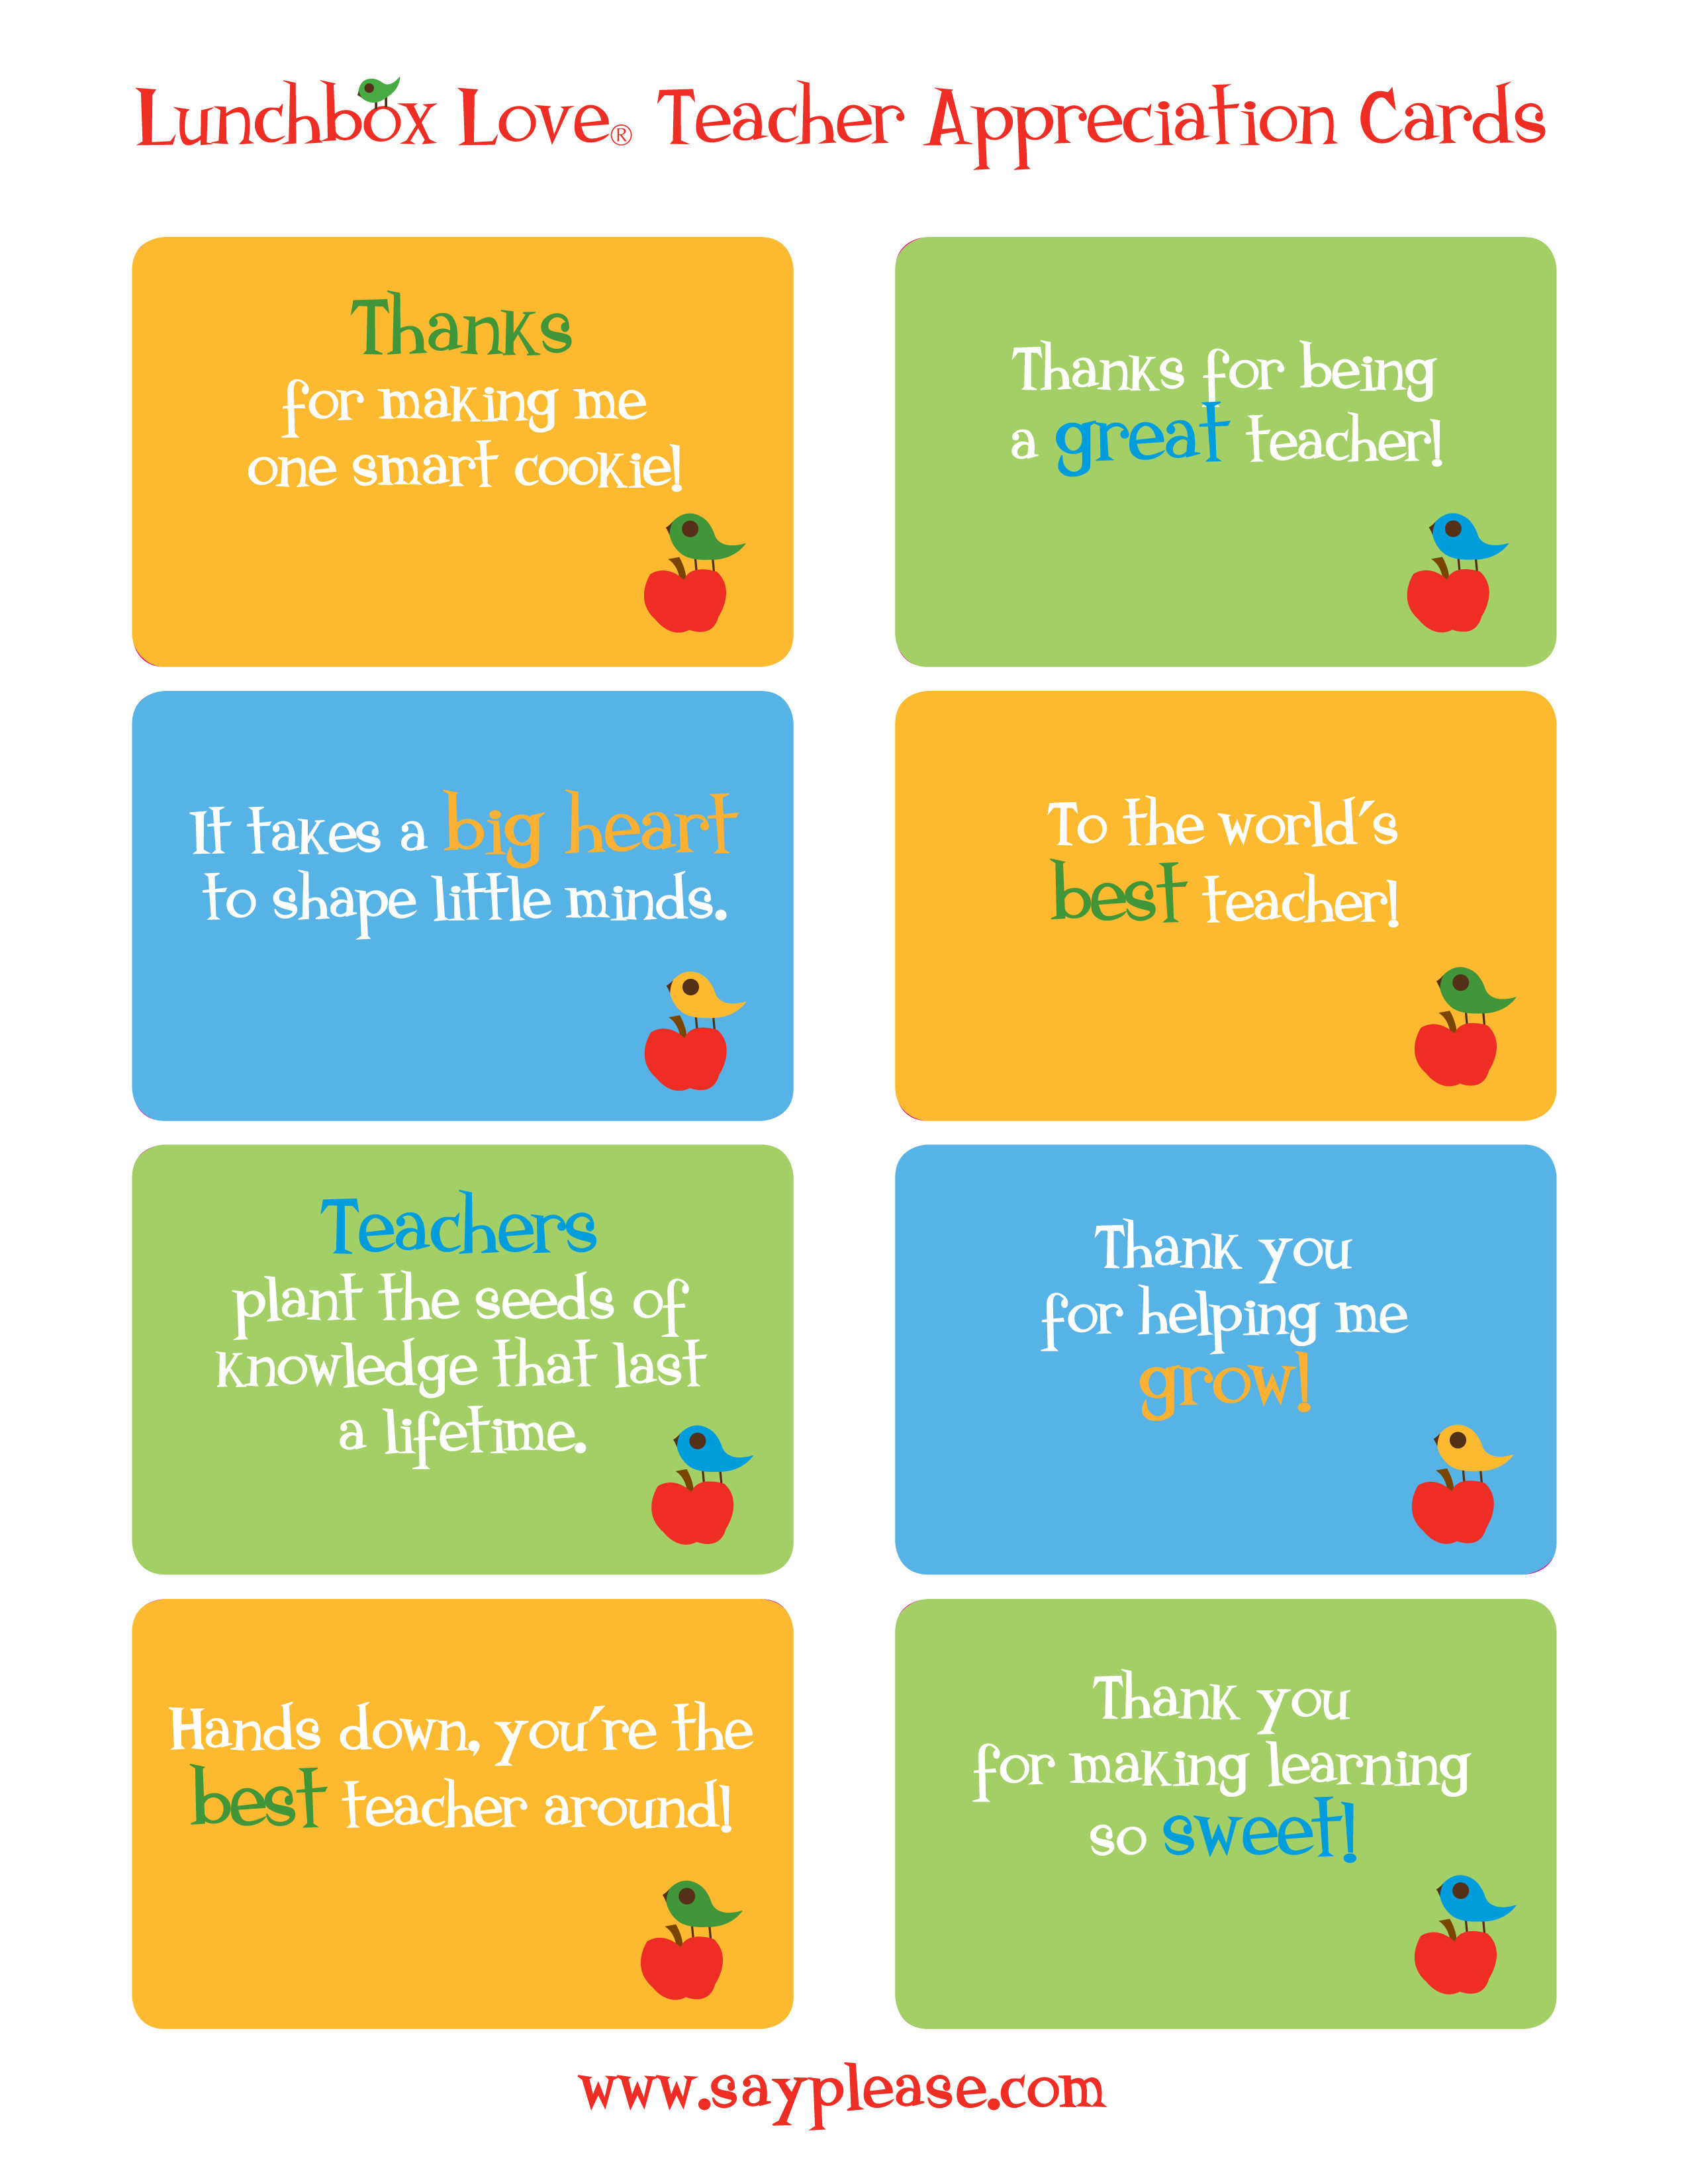 Free Printable Teacher Appreciation Cards - Classy World - Free Printable Teacher Appreciation Cards